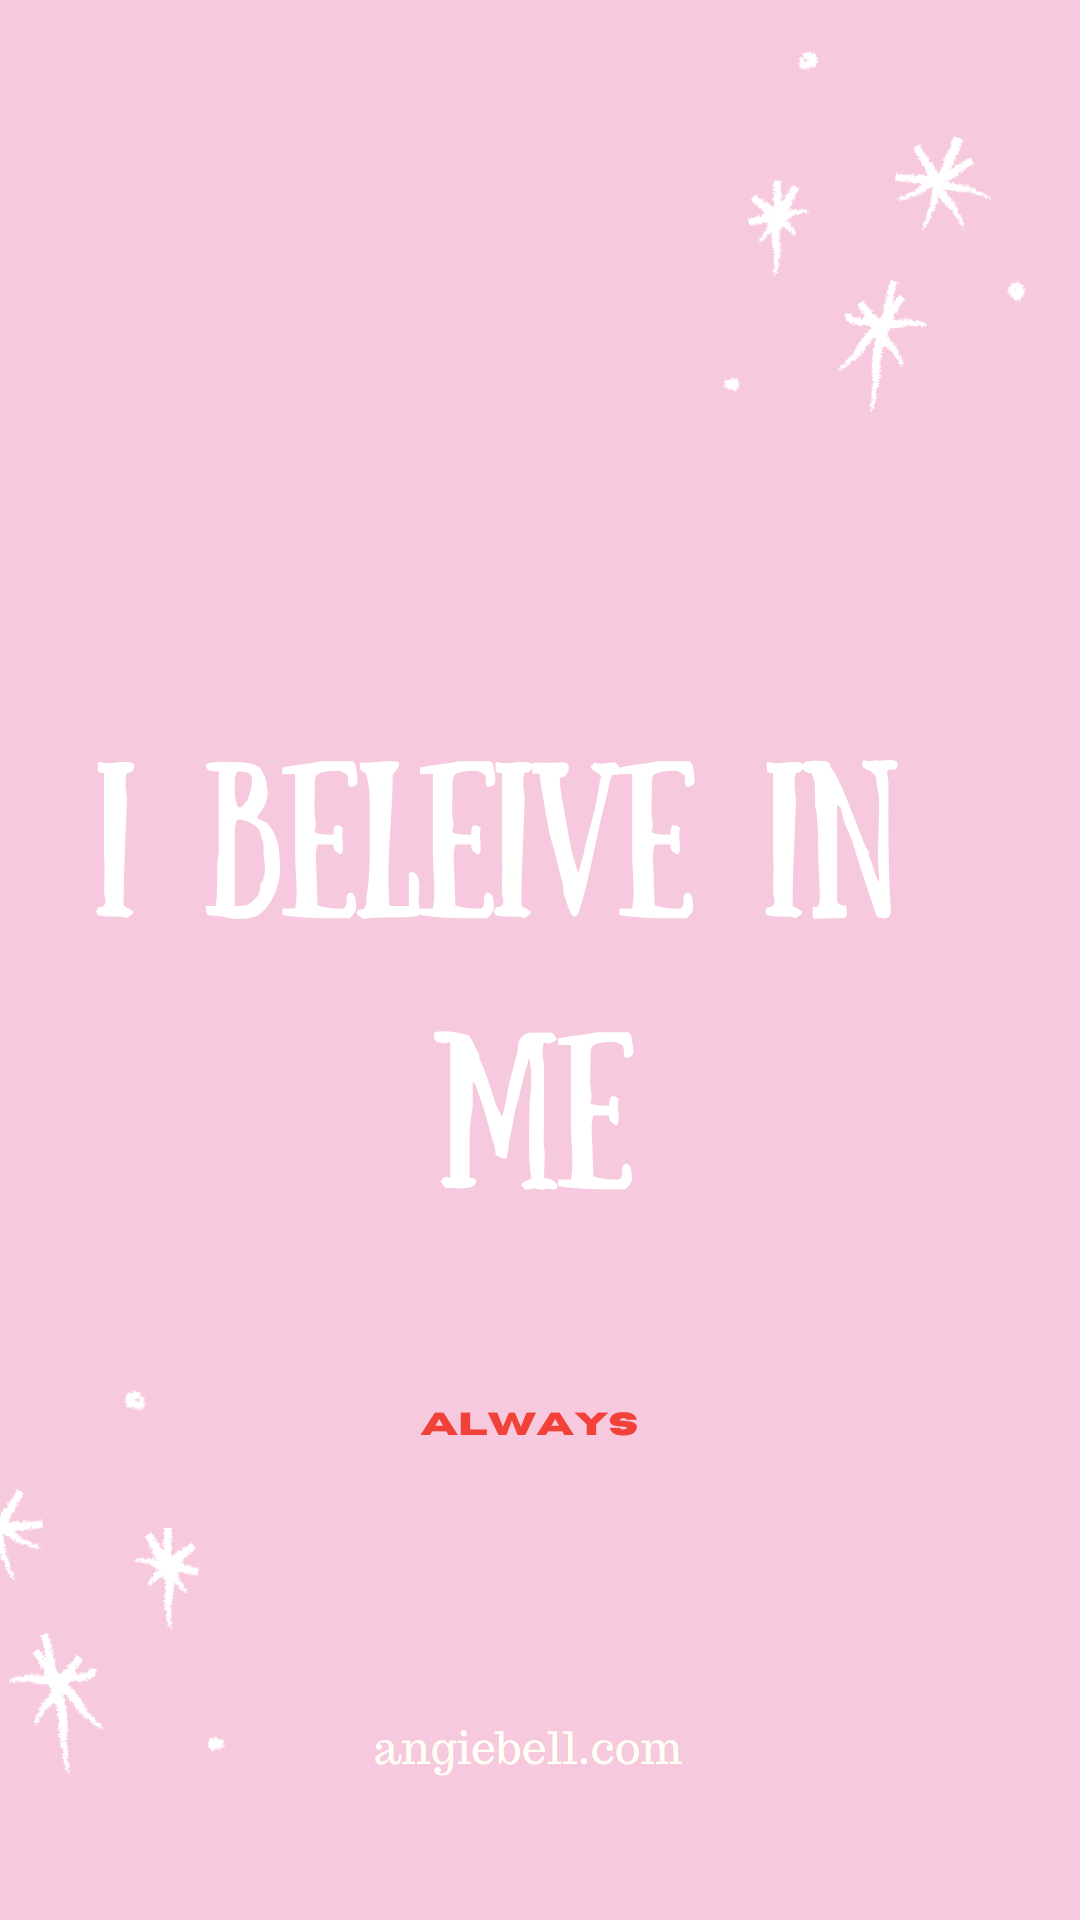 I believe in me - Angie Bell